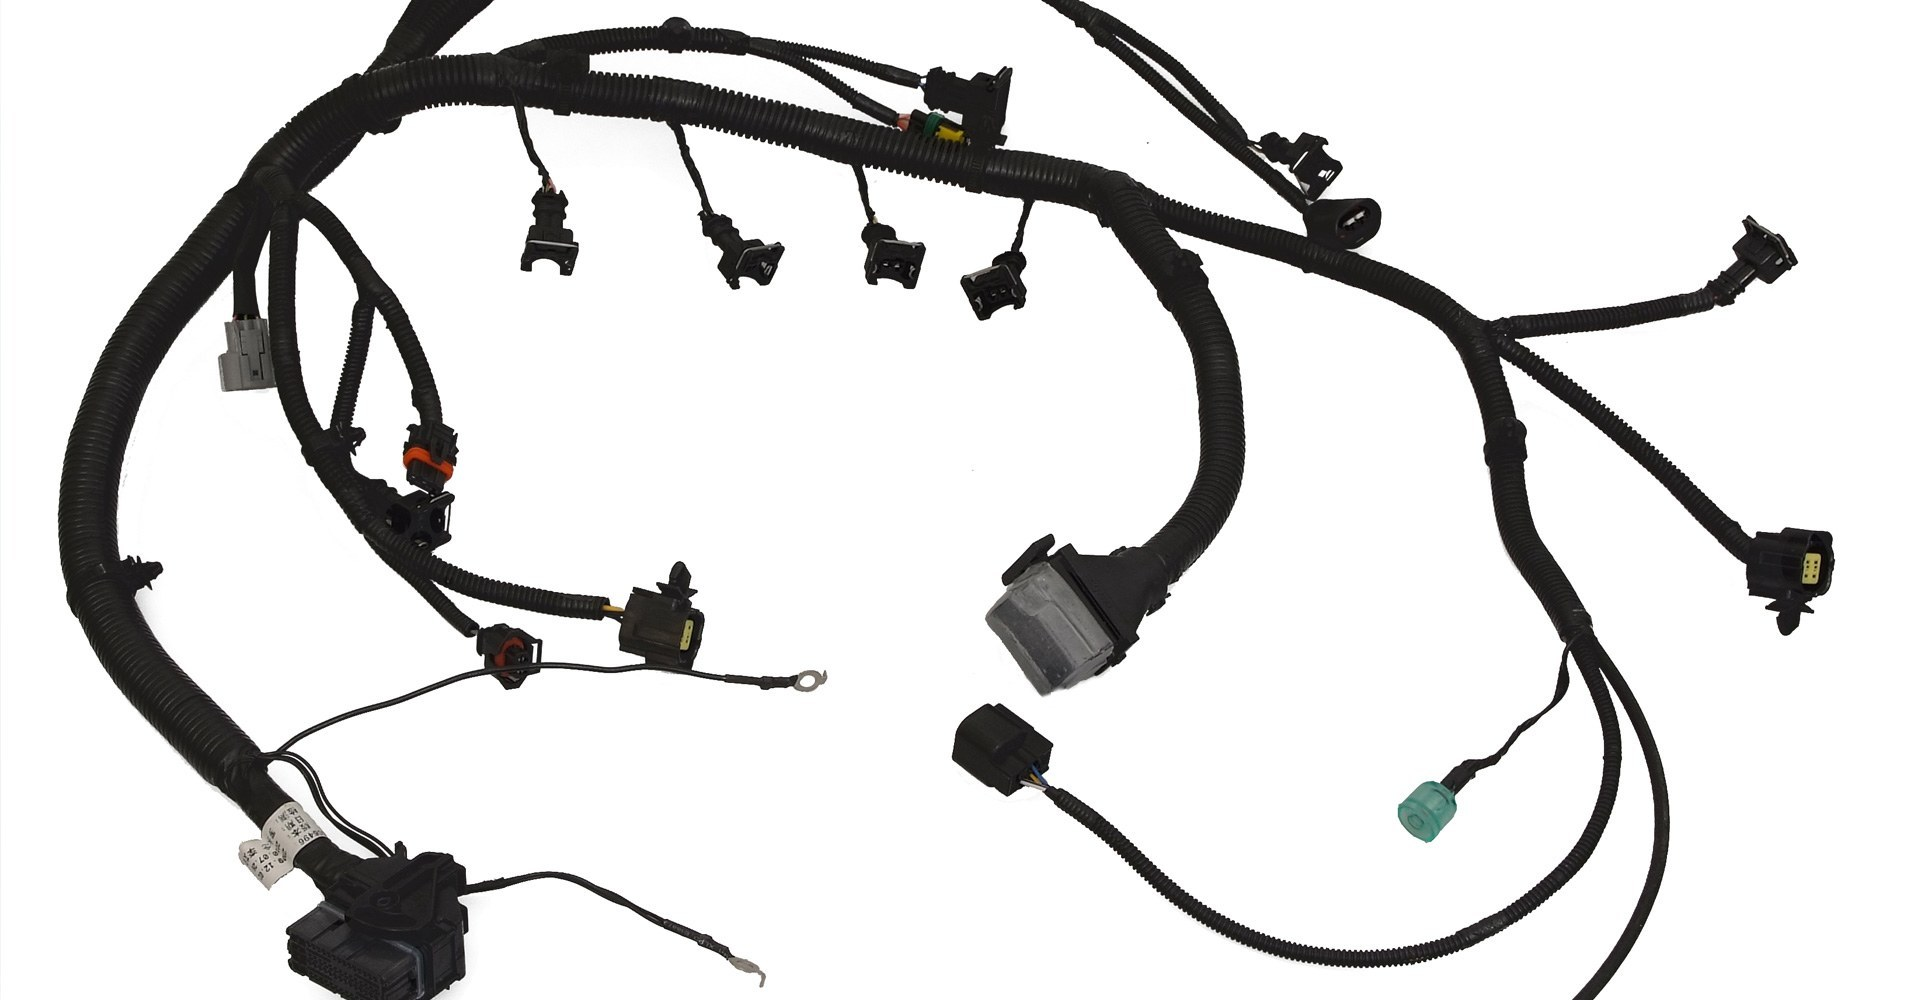 wireharness automotive wire harness products lorom wire harness automation at edmiracle.co